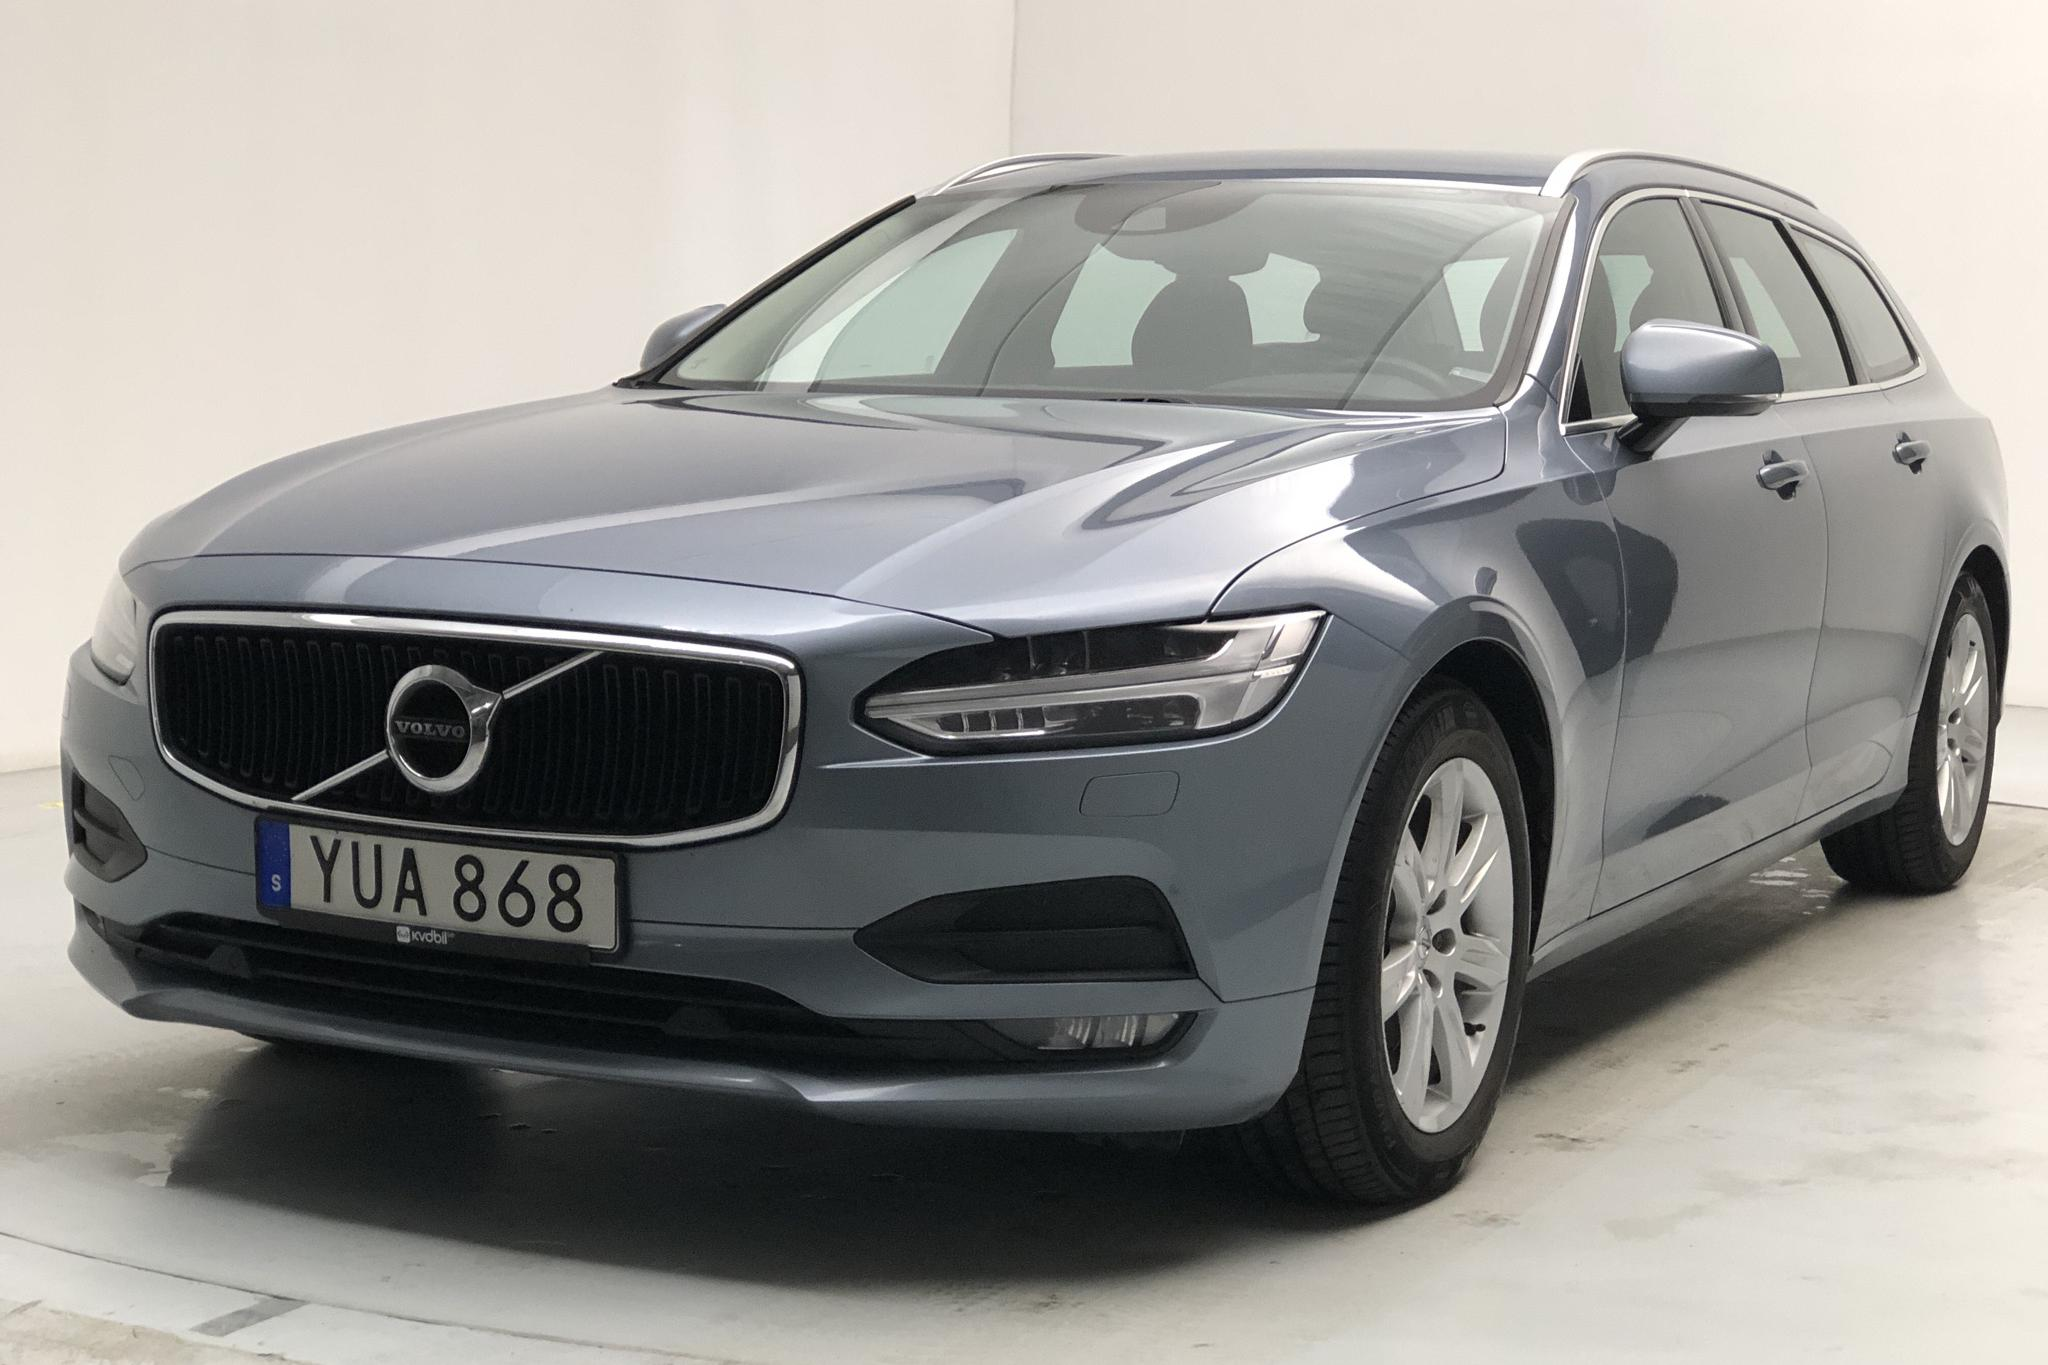 Volvo V90 D3 AWD (150hk) - 140 470 km - Automatic - Light Blue - 2018